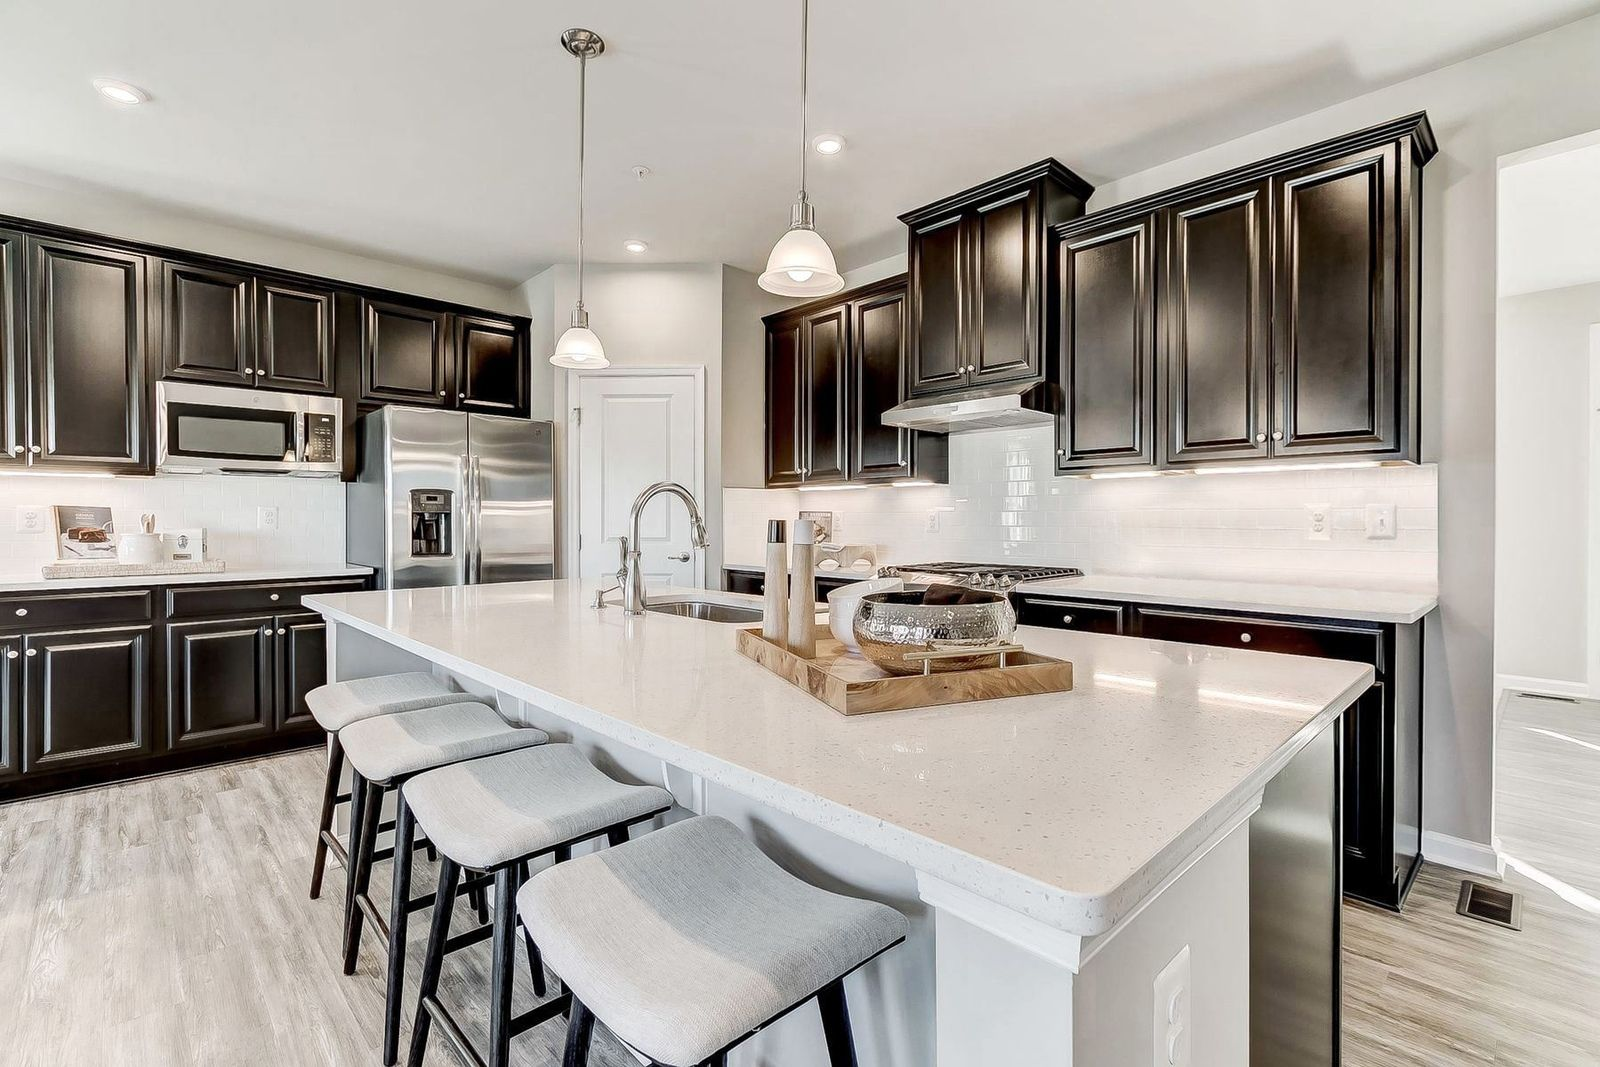 Kitchen featured in the Saint Lawrence By Ryan Homes in Philadelphia, PA